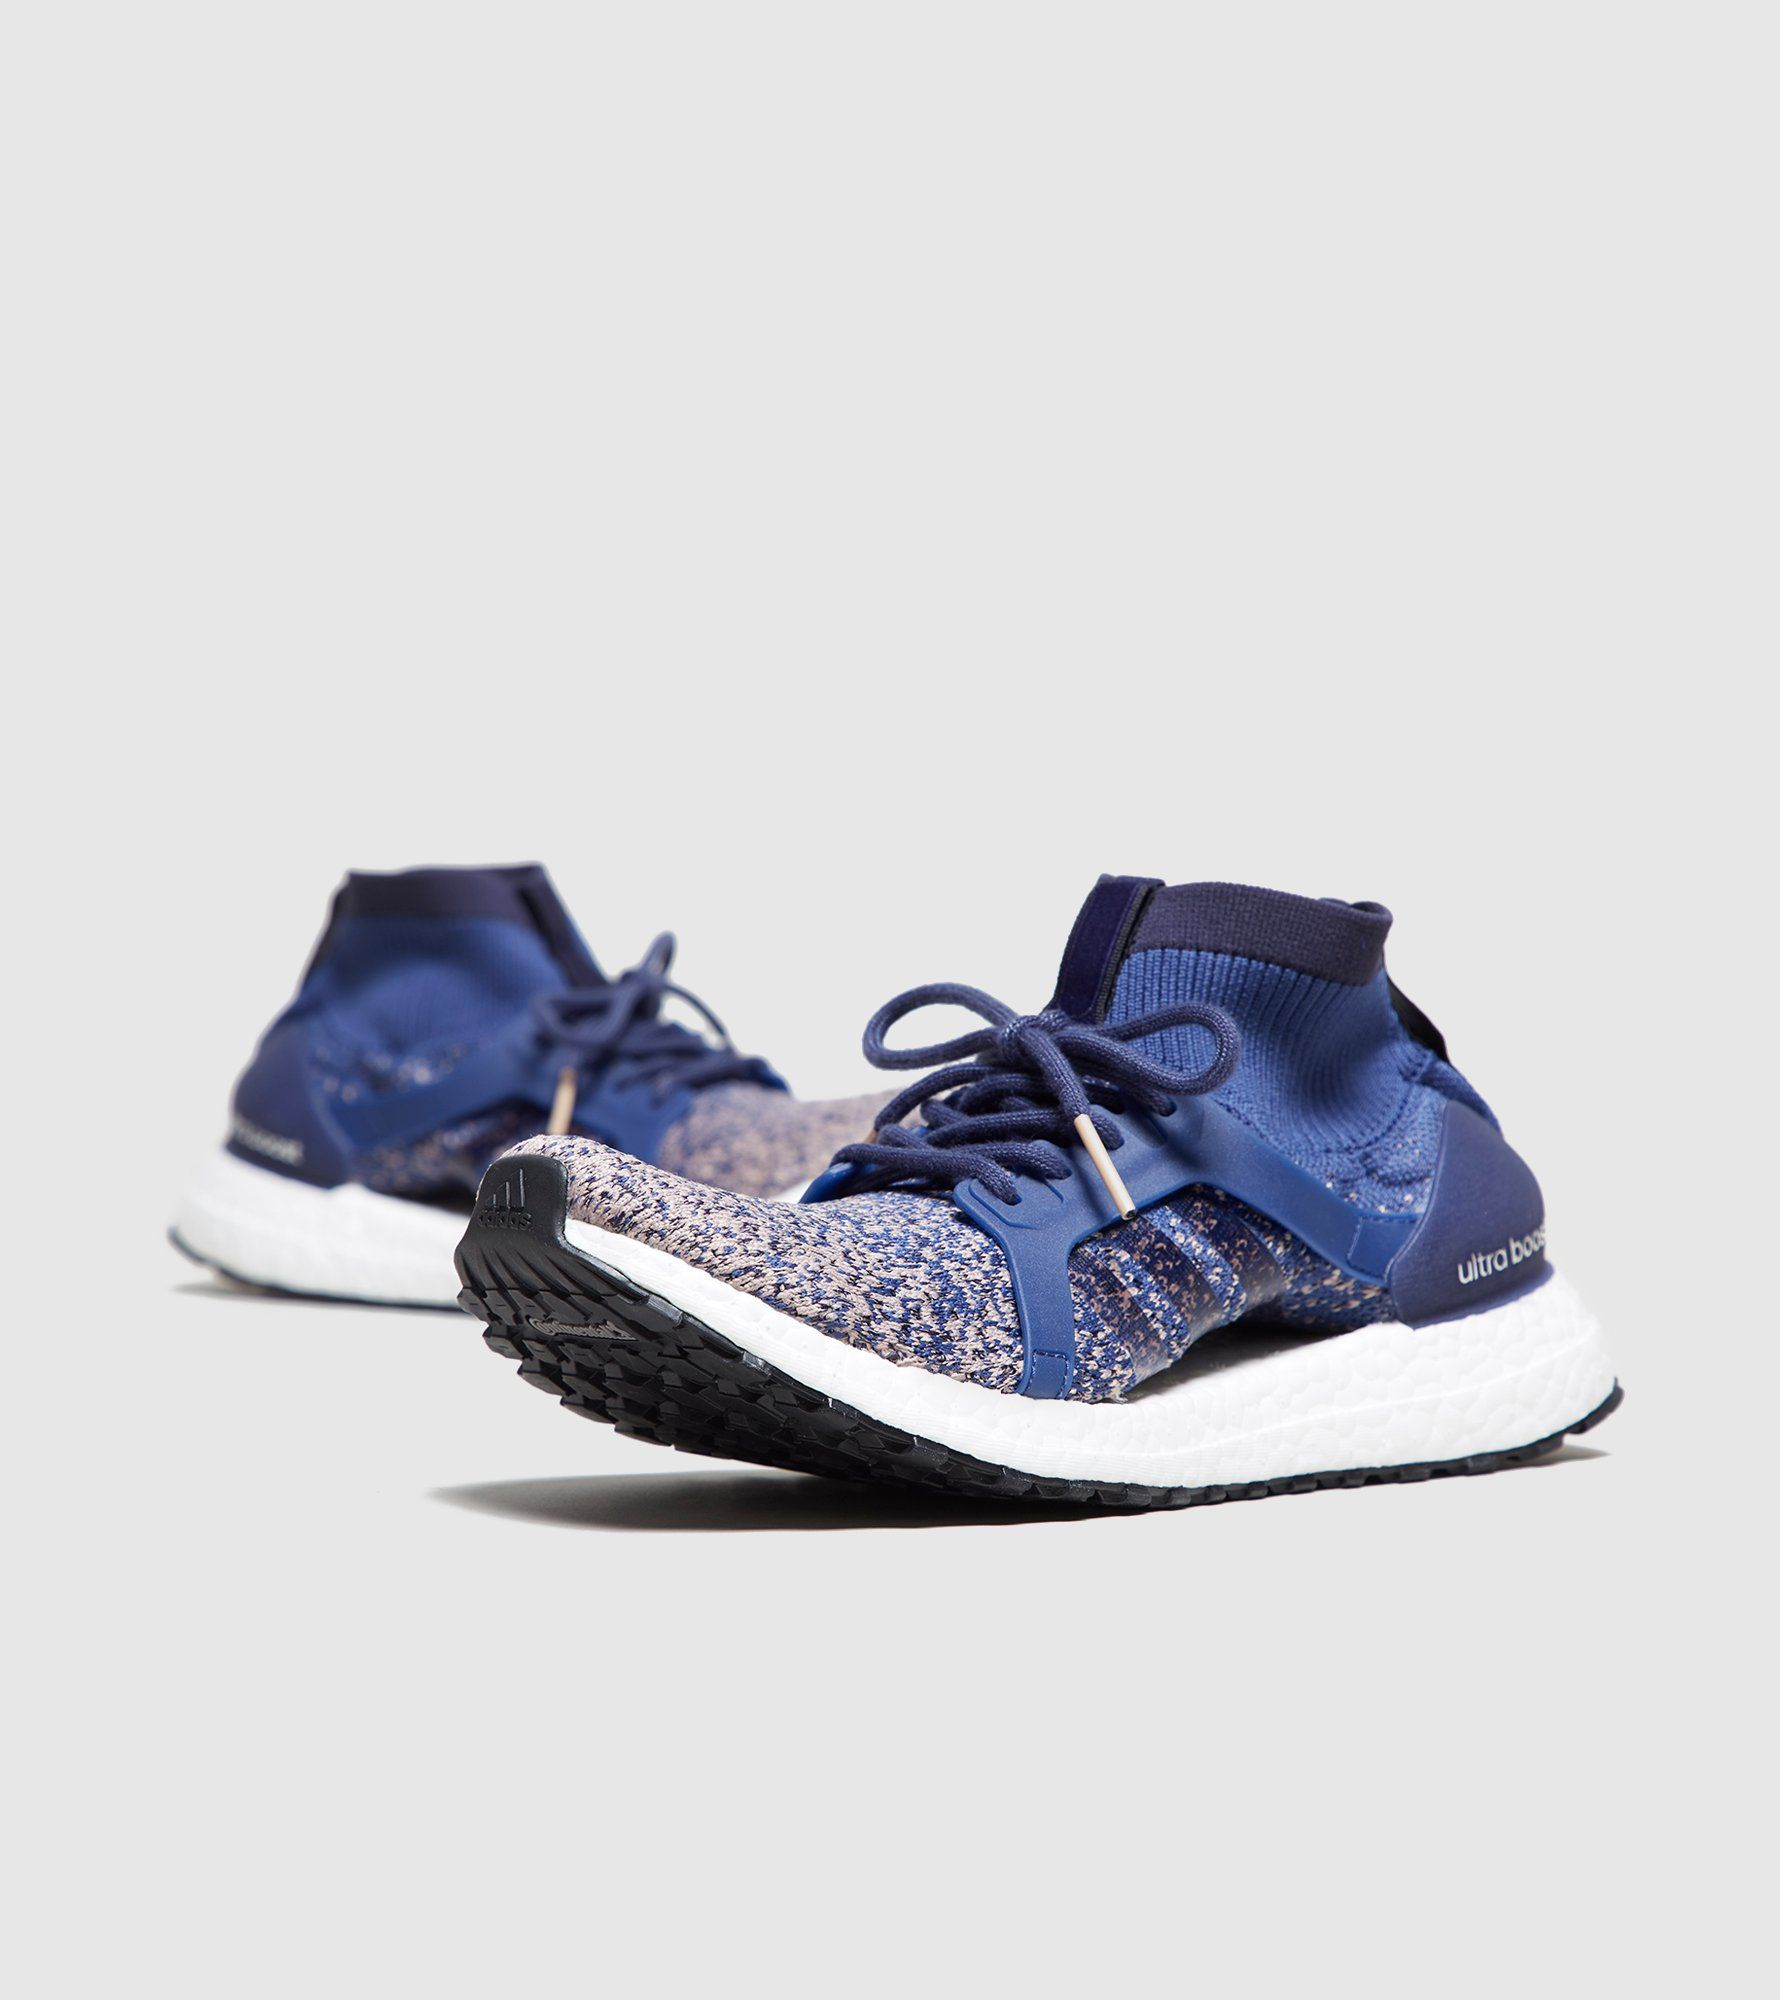 adidas UltraBoost X All Terrain Women's